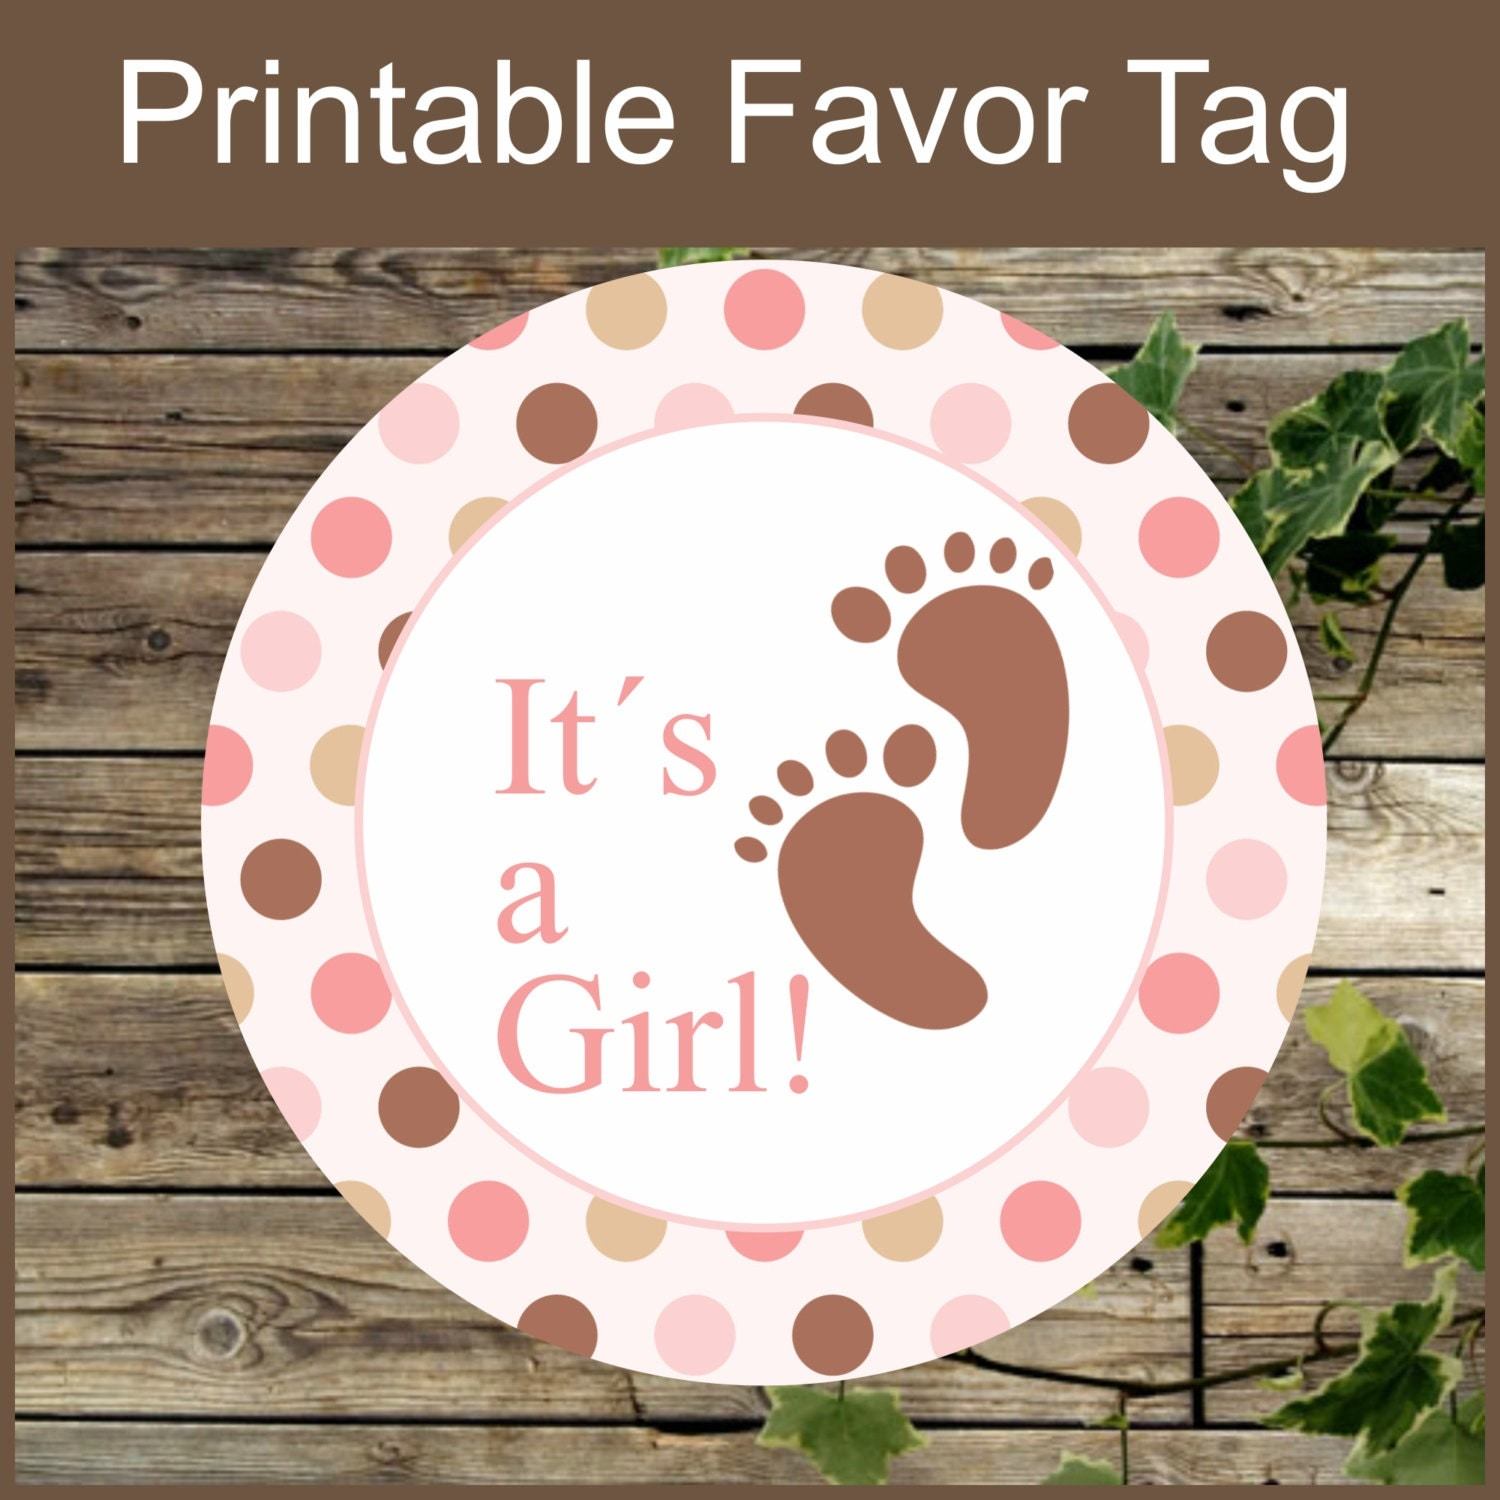 Baby shower favor tags printable pink and brown footprints tags its a girl pink favor labels for Printable baby shower favor tags